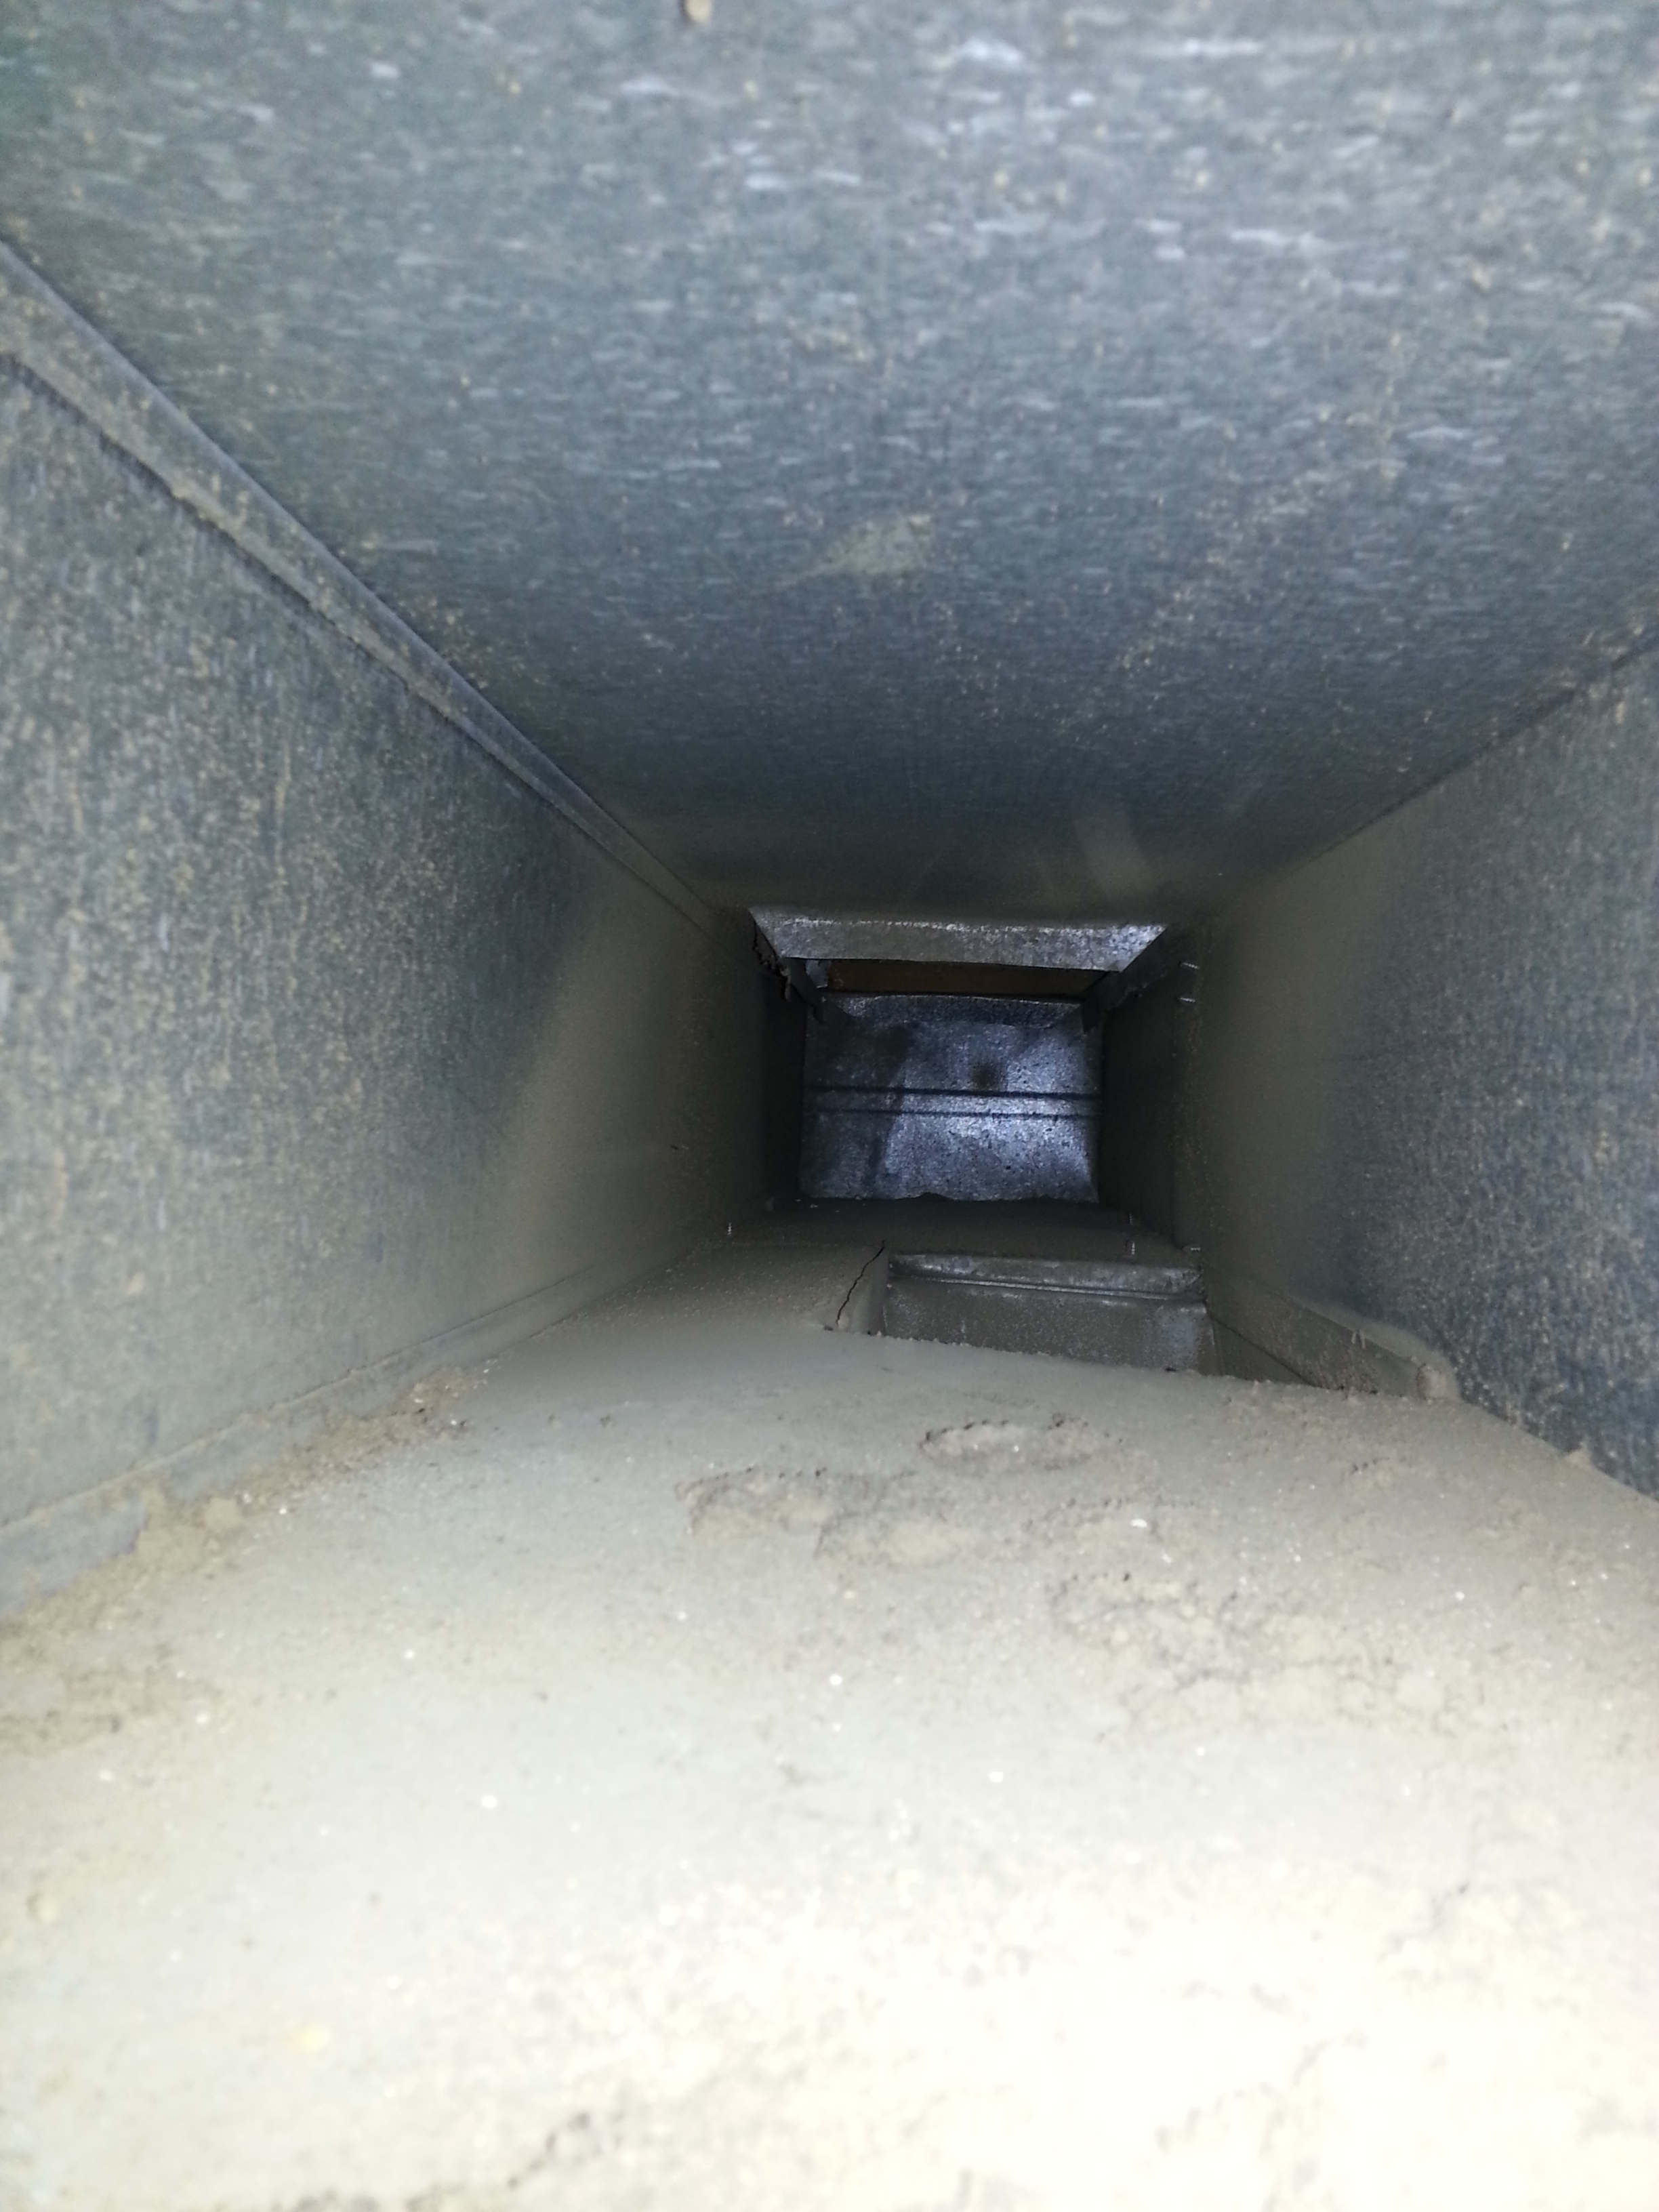 Dirty Air Ducts Pre-Clean By Real Clean Air Ducts In Montgomery, MD